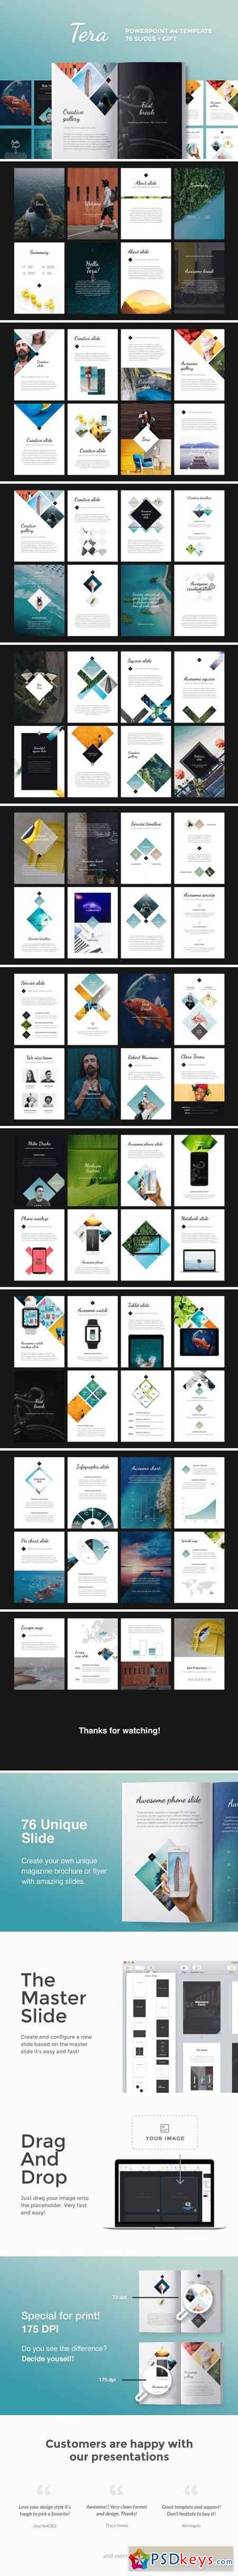 A4 Tera PowerPoint Template 2463632